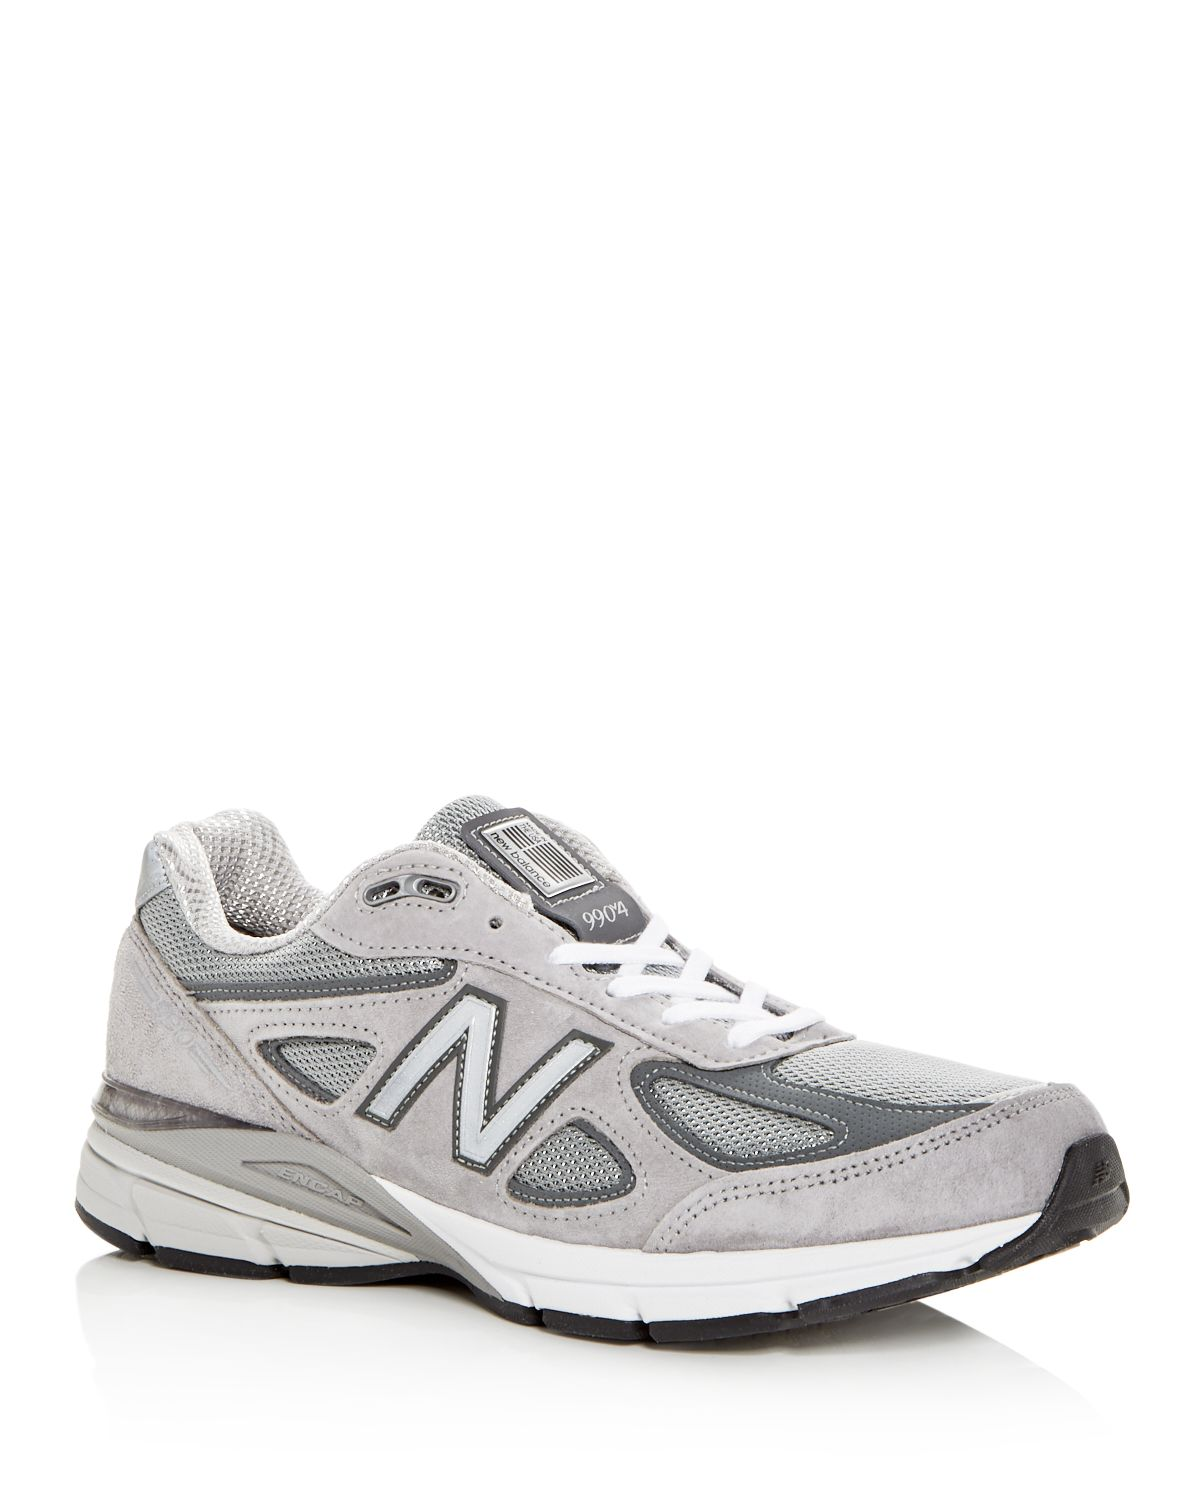 New Balance Men's 990v4 Lace Up Sneakers